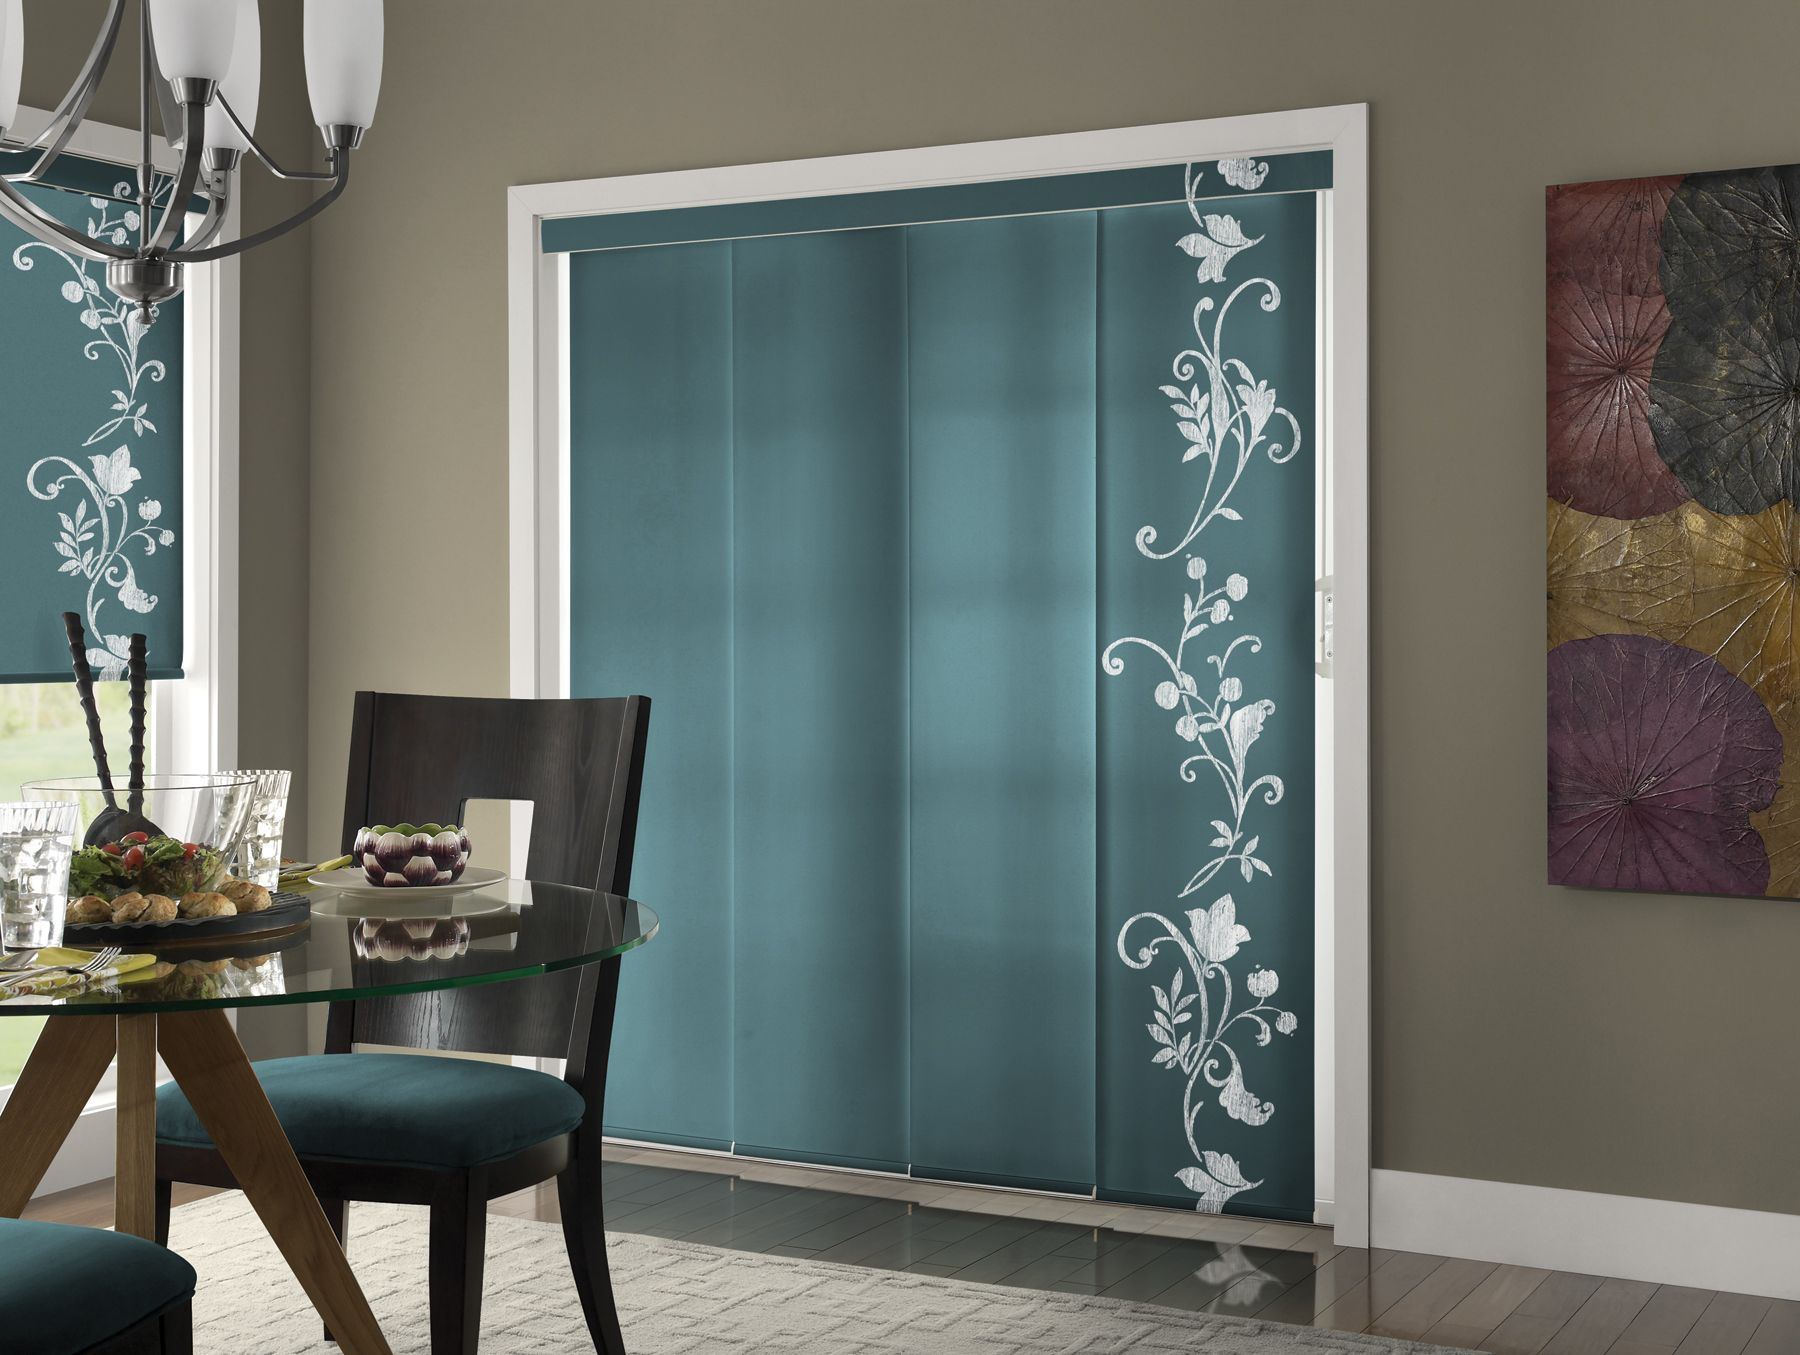 Curtains For Sliding Doors Ideas curtain astonishing curtains for patio doors sliding door Find This Pin And More On Curtains Ideas Alluring Sliding Glass Door